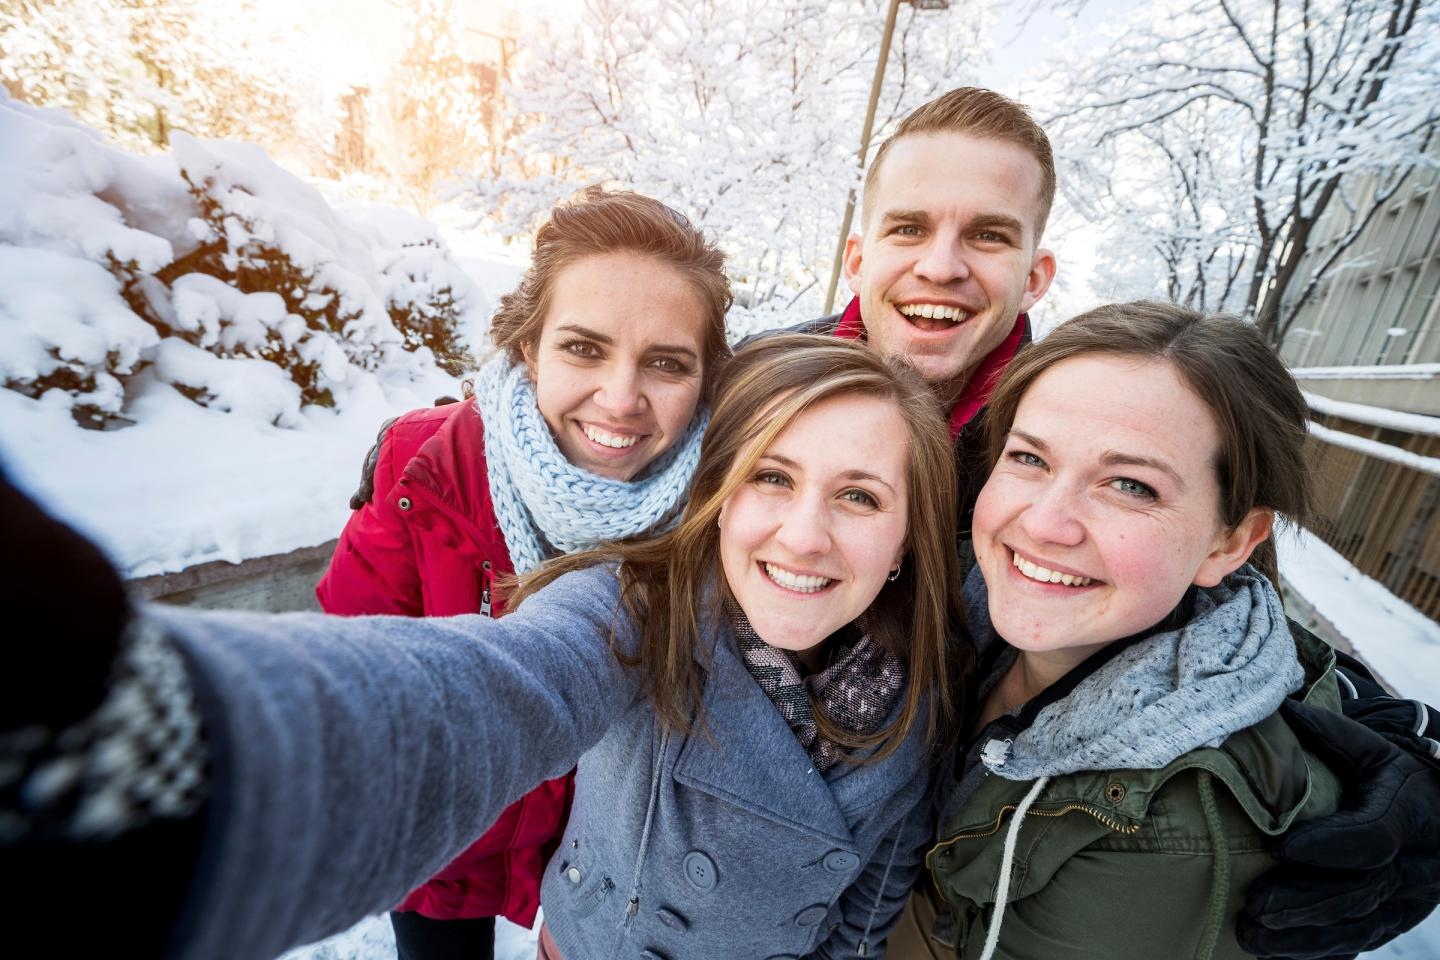 Most Selfie Takers Arent Narcissists Study Says - The 10 best selfies in history